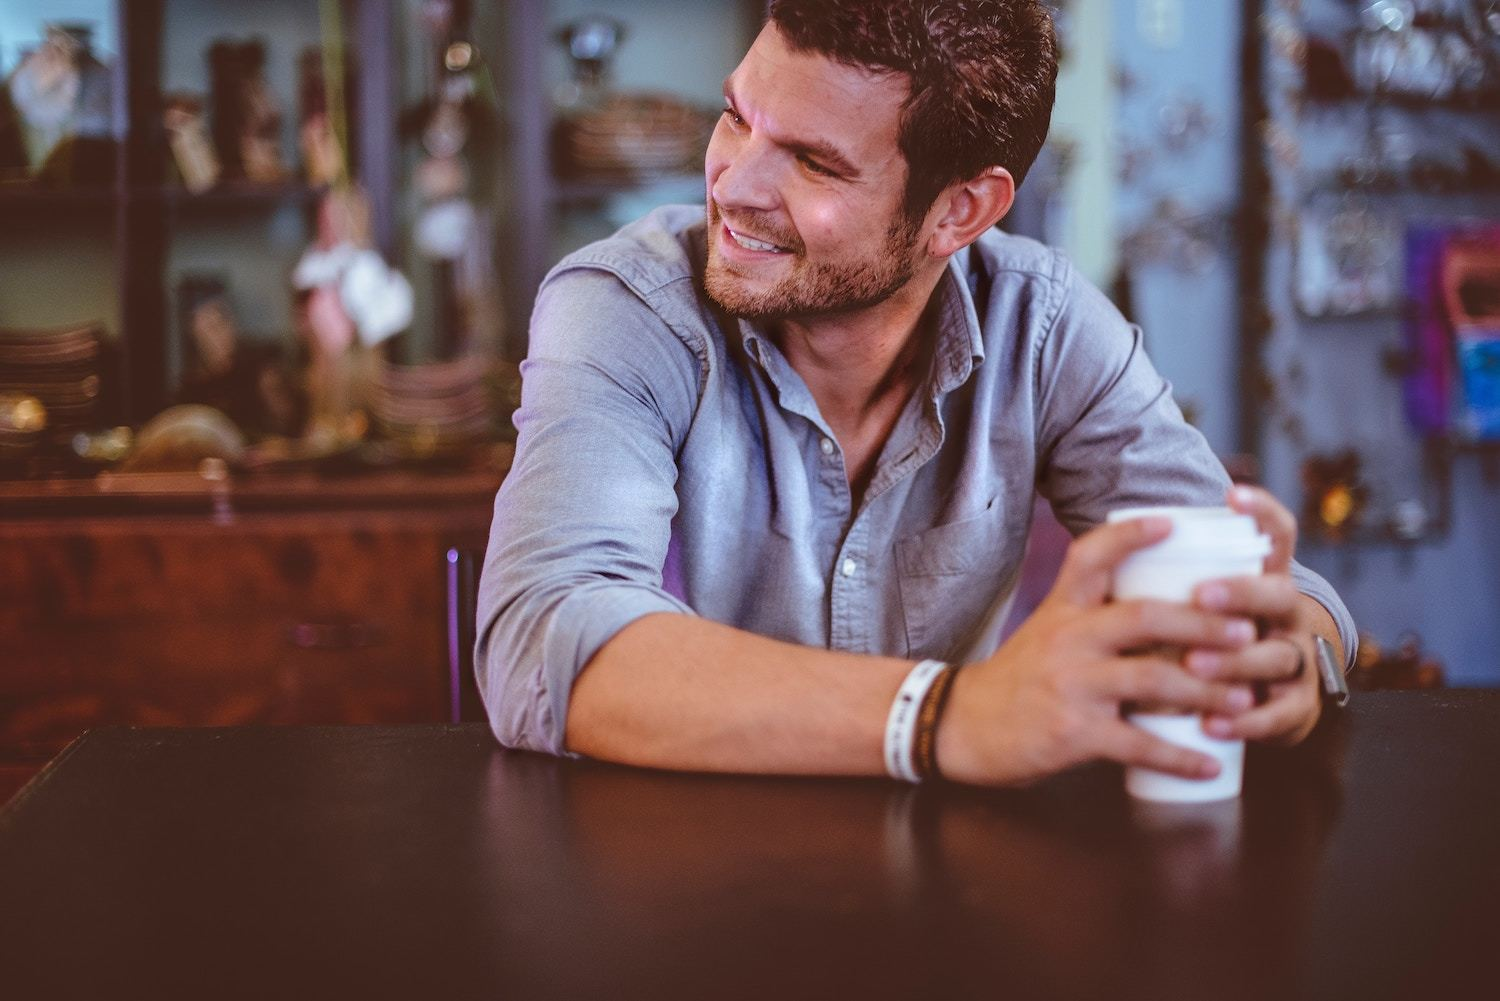 Smiling man with coffee cup